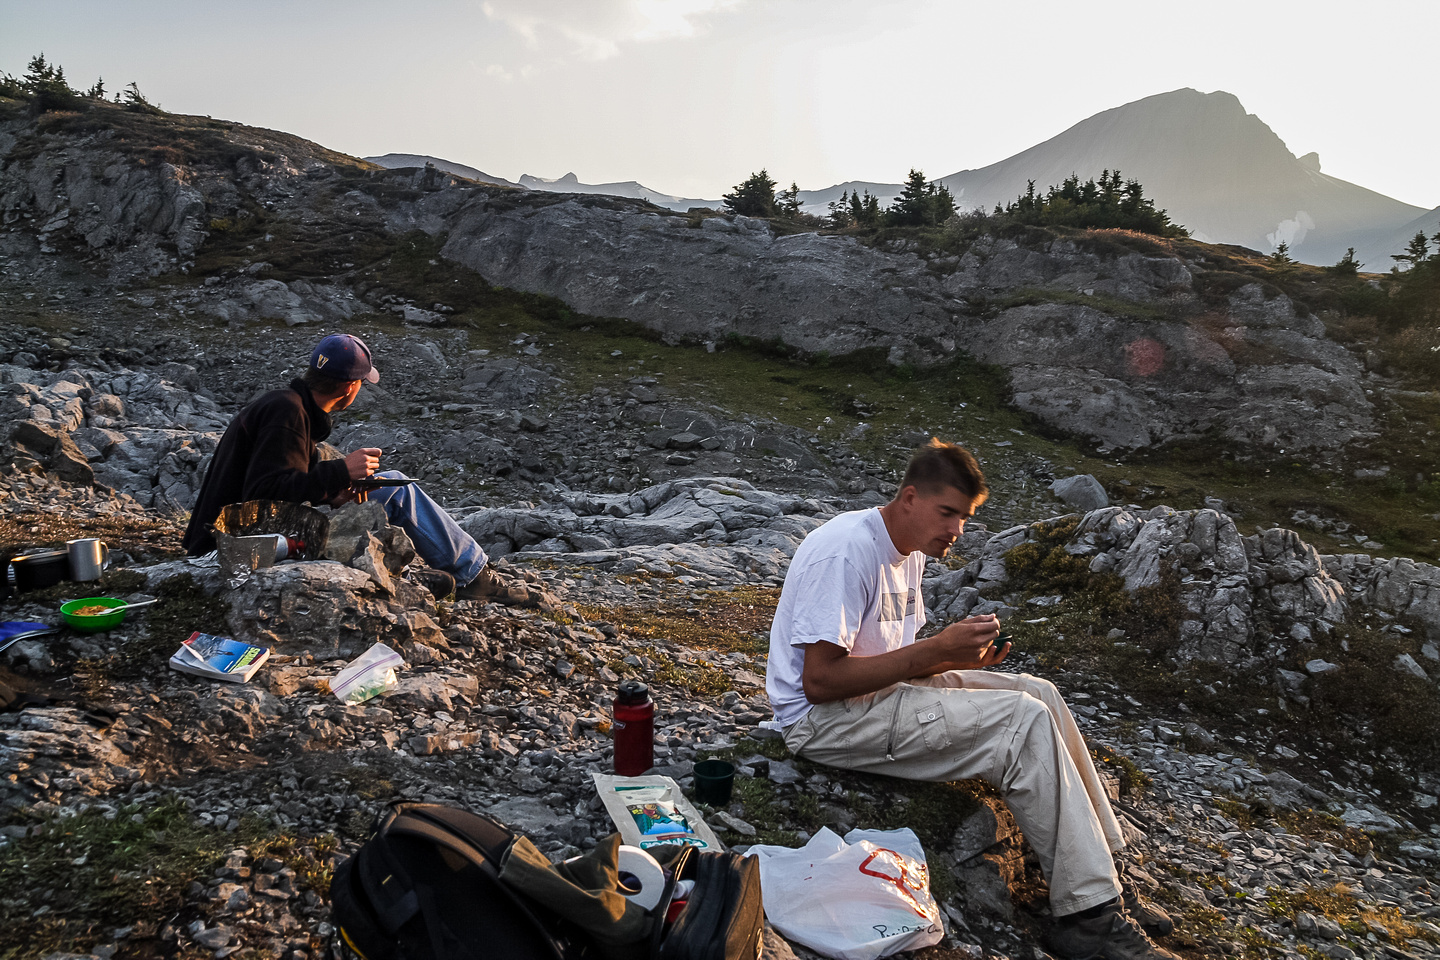 Evening at camp after scrambling Warrior, Cordonnier and Northover.